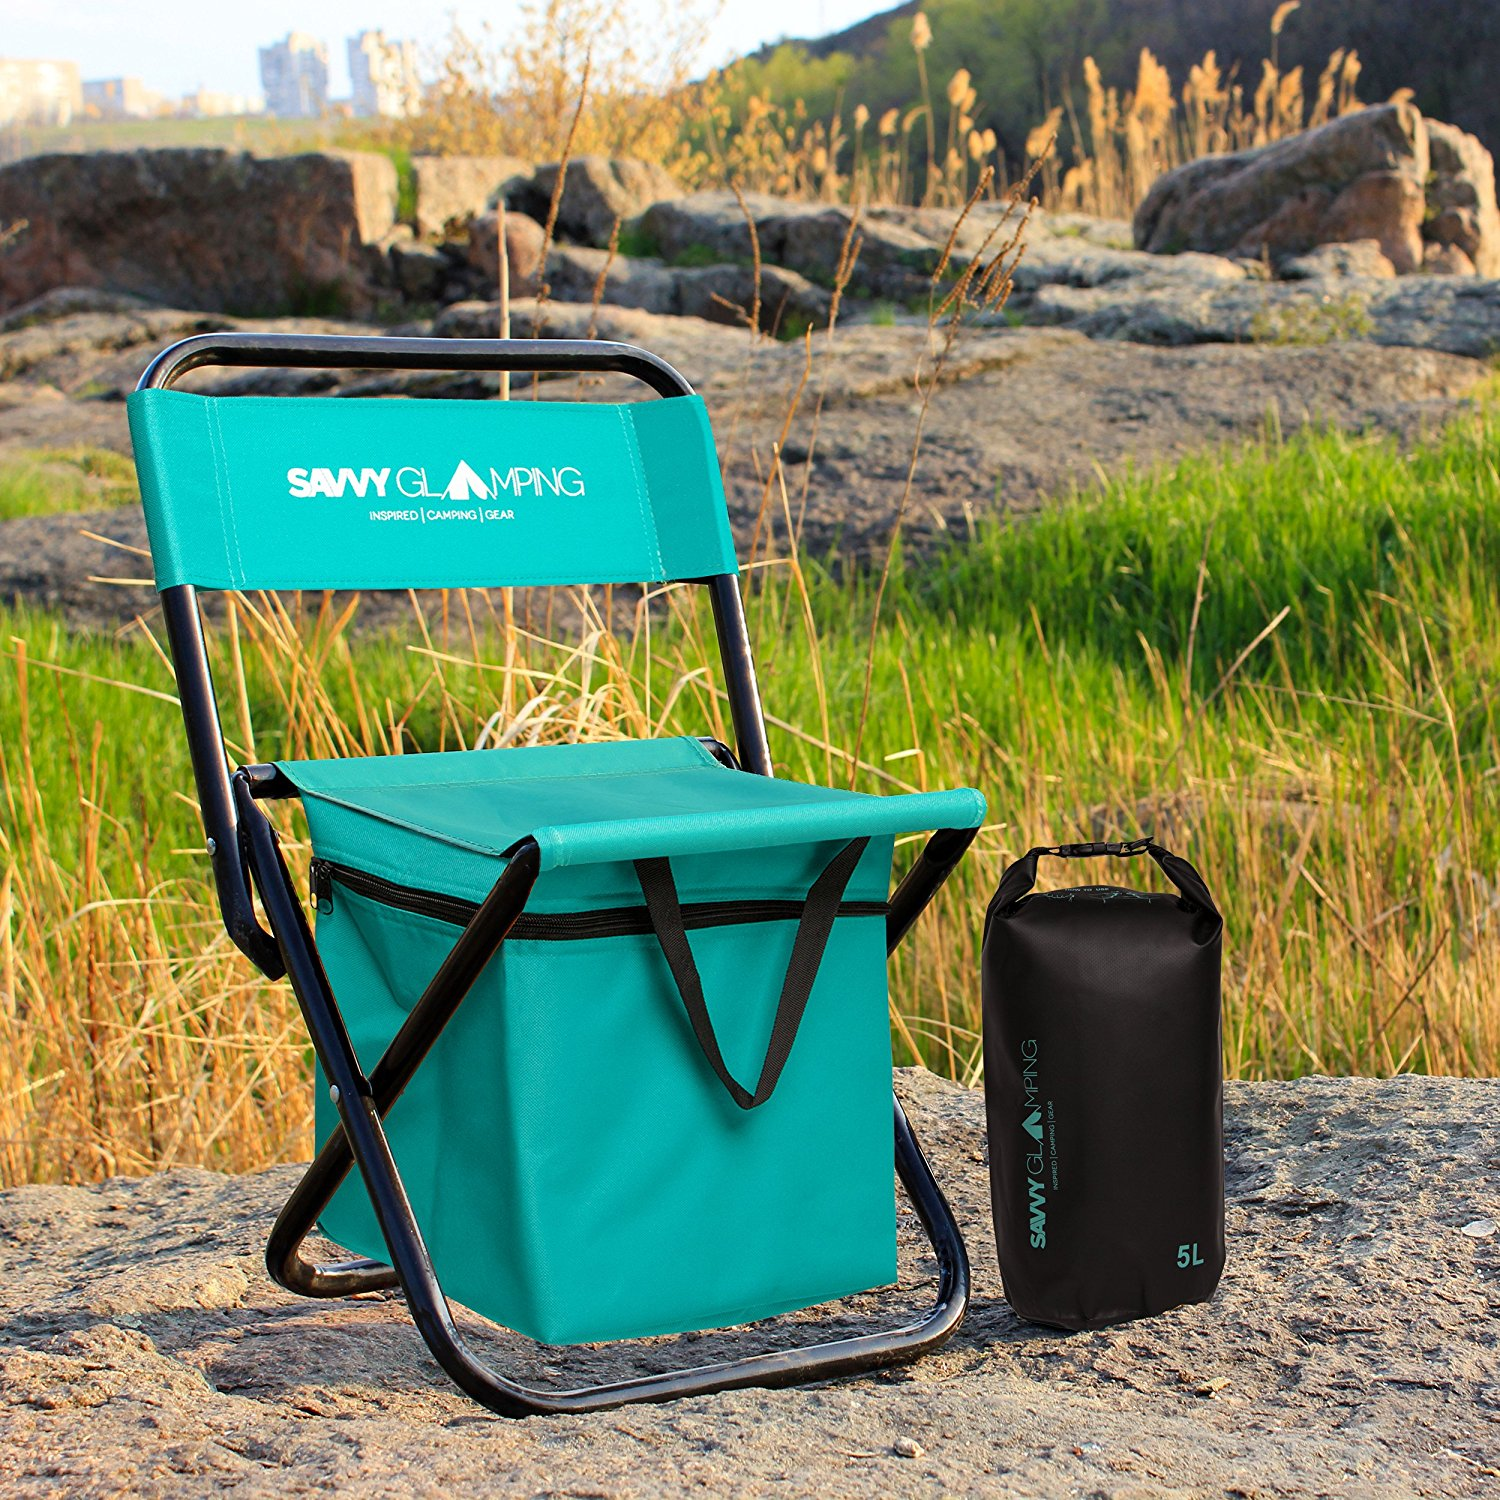 Mini Folding Chair Mini Portable Folding Chair With Built In Cooler By Savvy